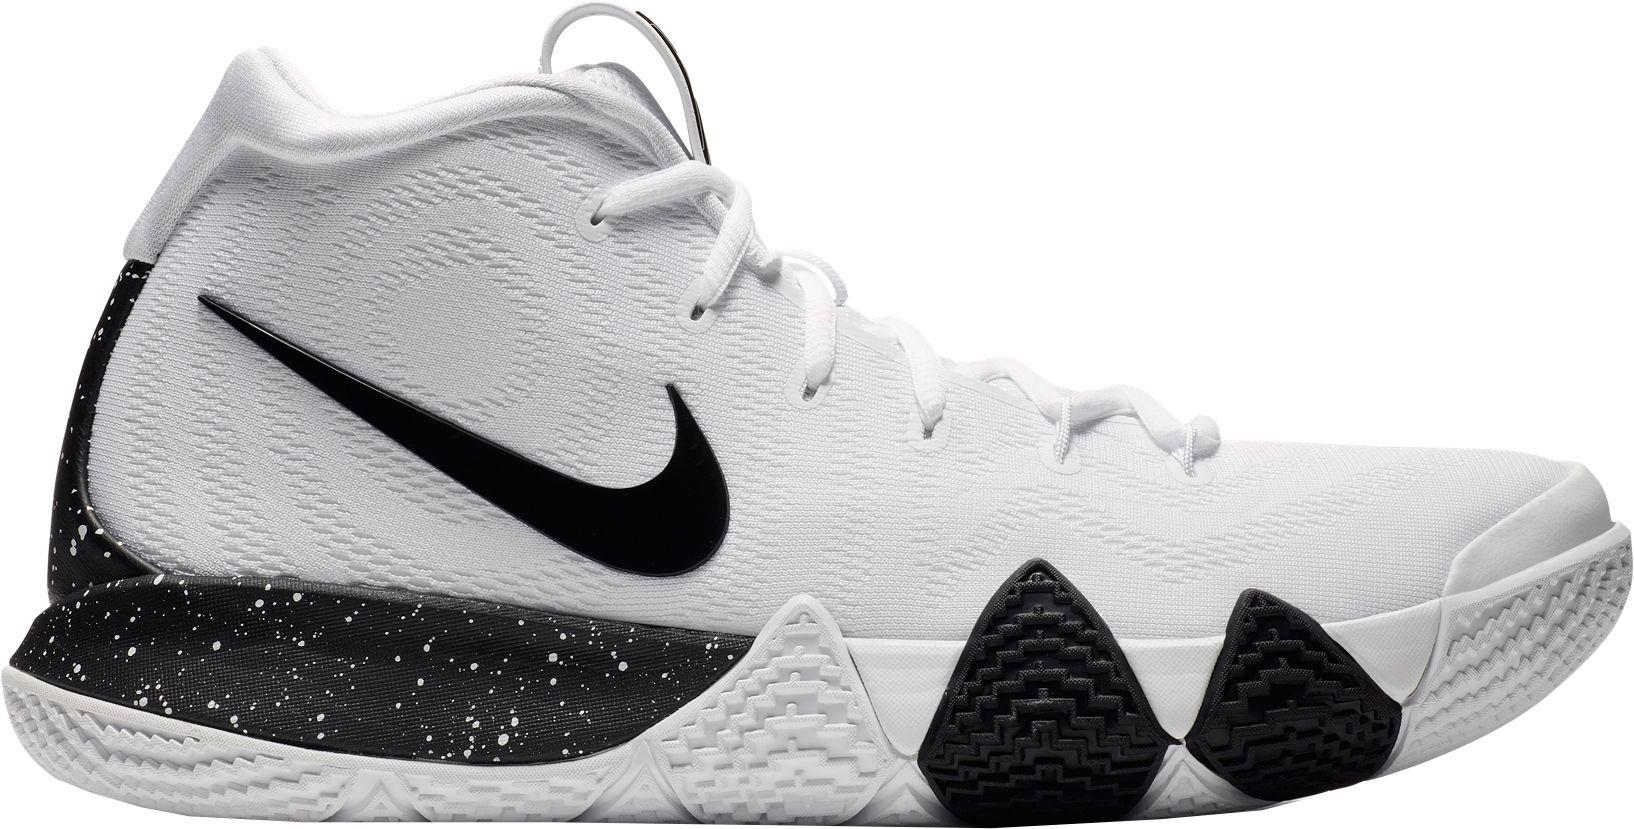 da4fdeb10157 Nike Kyrie 4 Tb Basketball Shoes in White for Men - Lyst